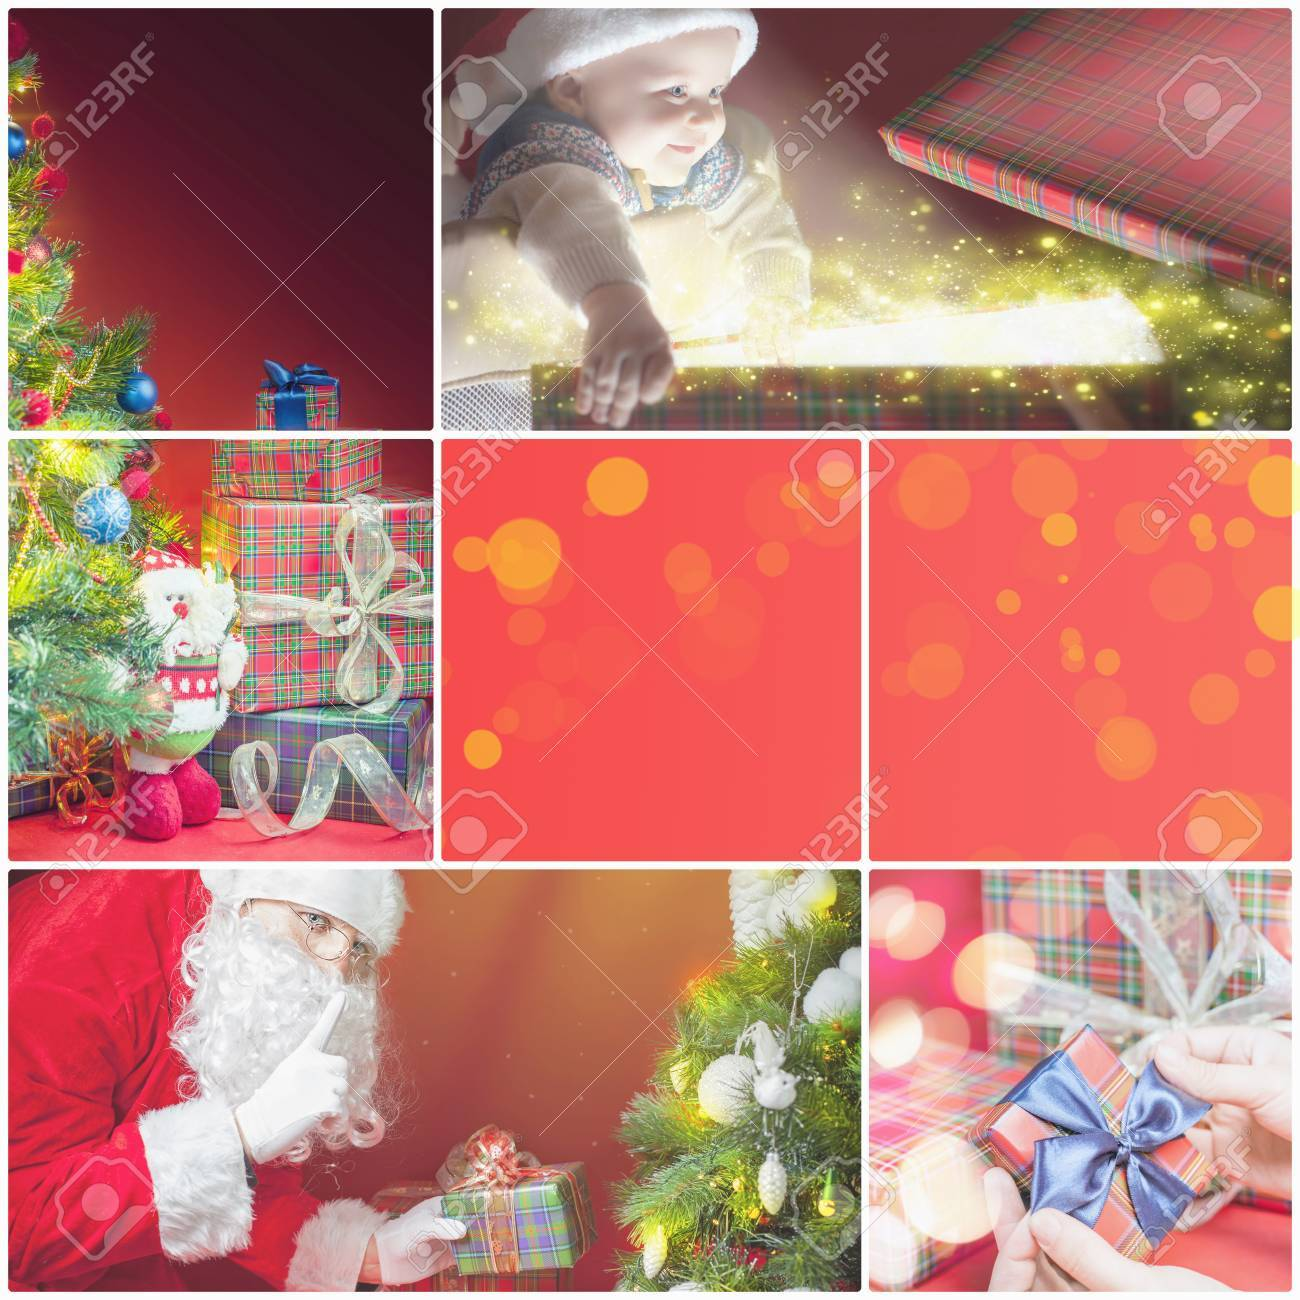 Collage With Several Images Of Christmas Xmas Theme Santa Holding Stock Photo Picture And Royalty Free Image Image 49857738